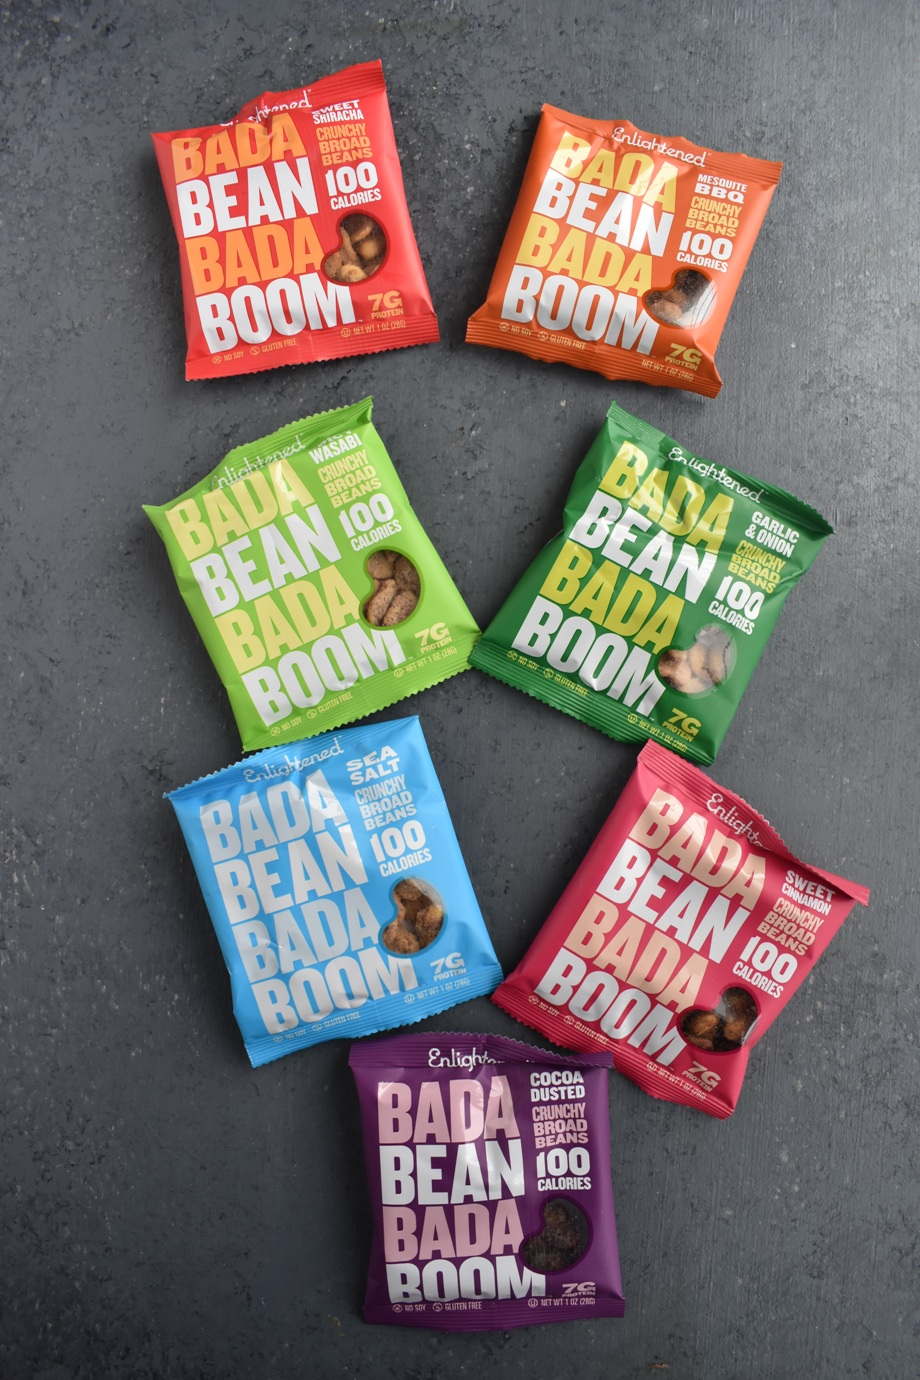 Enlightened Bada Bean Bada Boom Crunchy Broad Beans